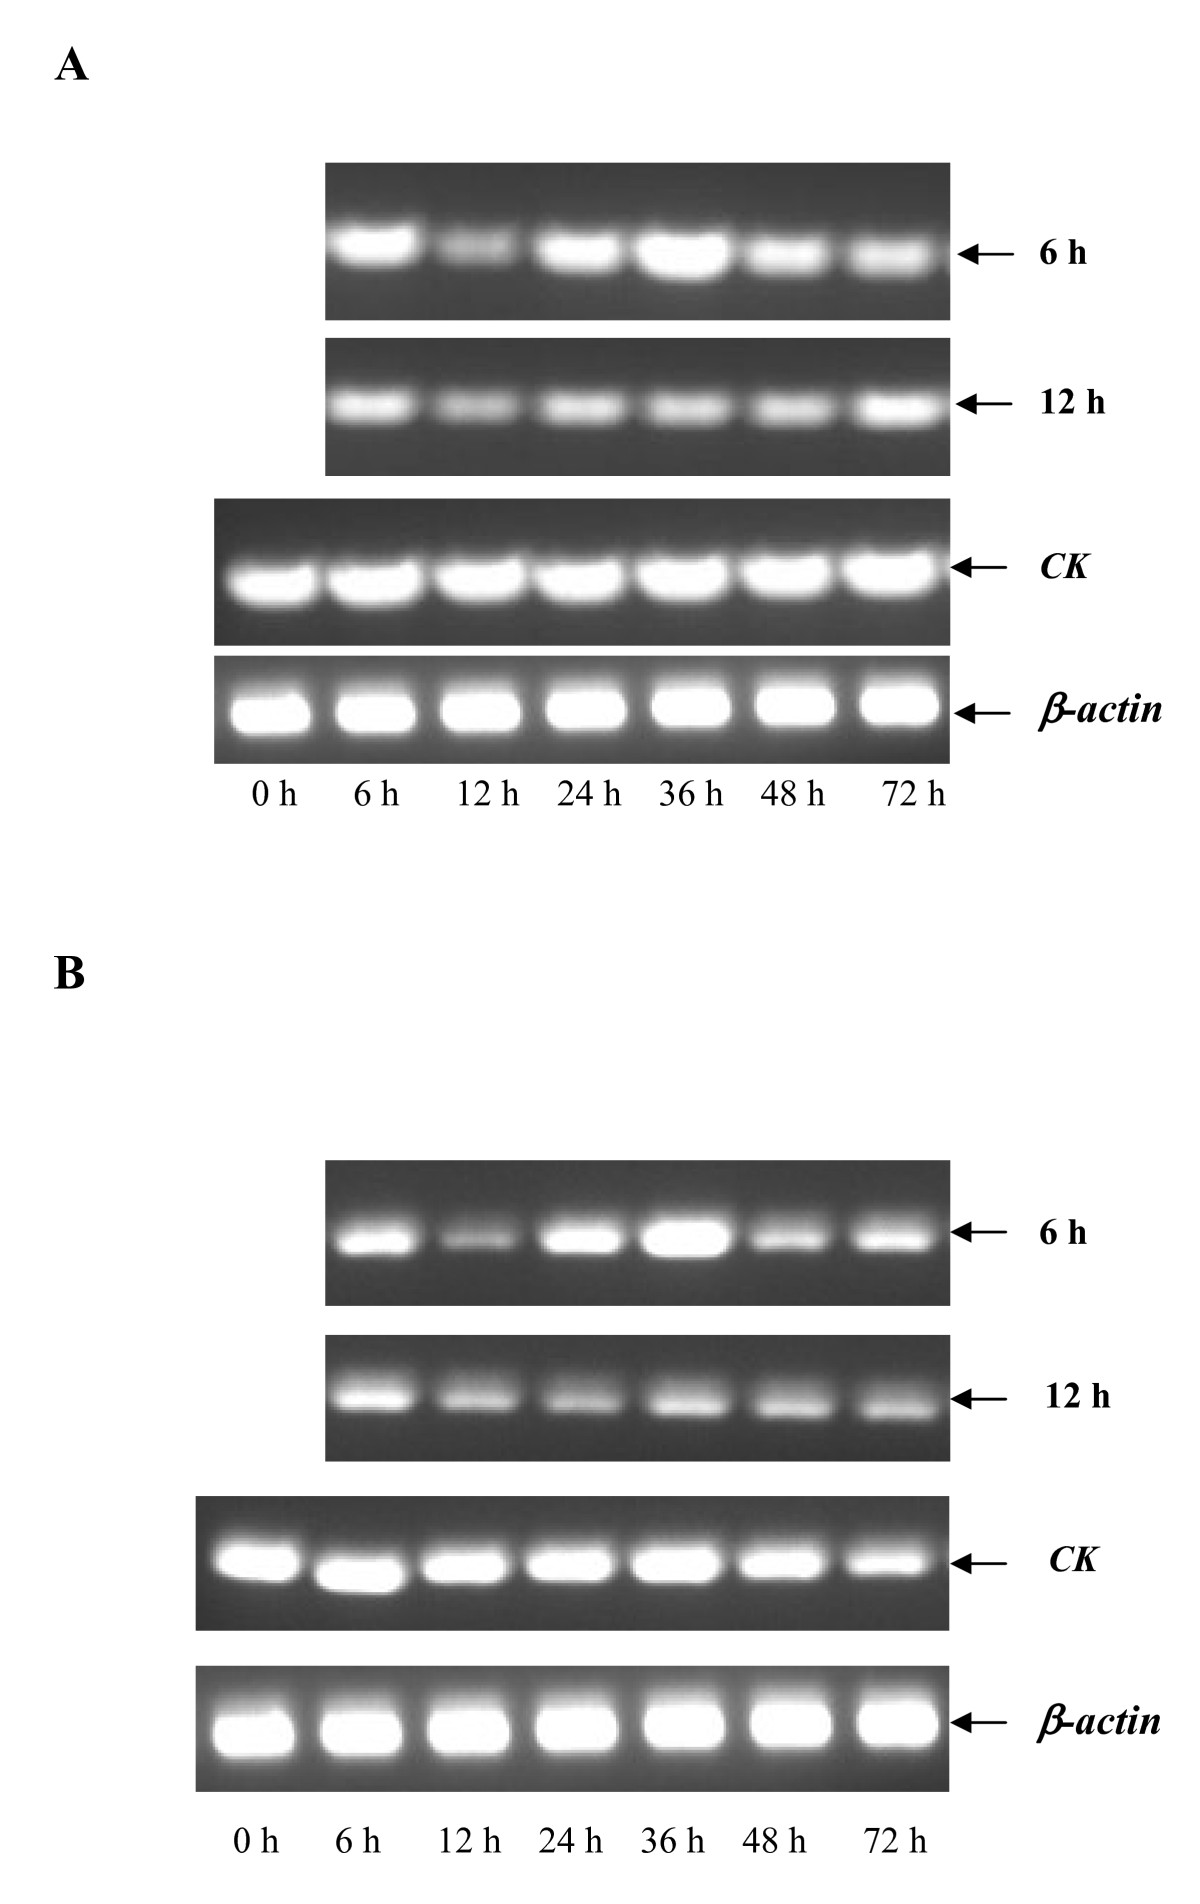 http://static-content.springer.com/image/art%3A10.1186%2F1471-2199-11-65/MediaObjects/12867_2009_Article_546_Fig4_HTML.jpg